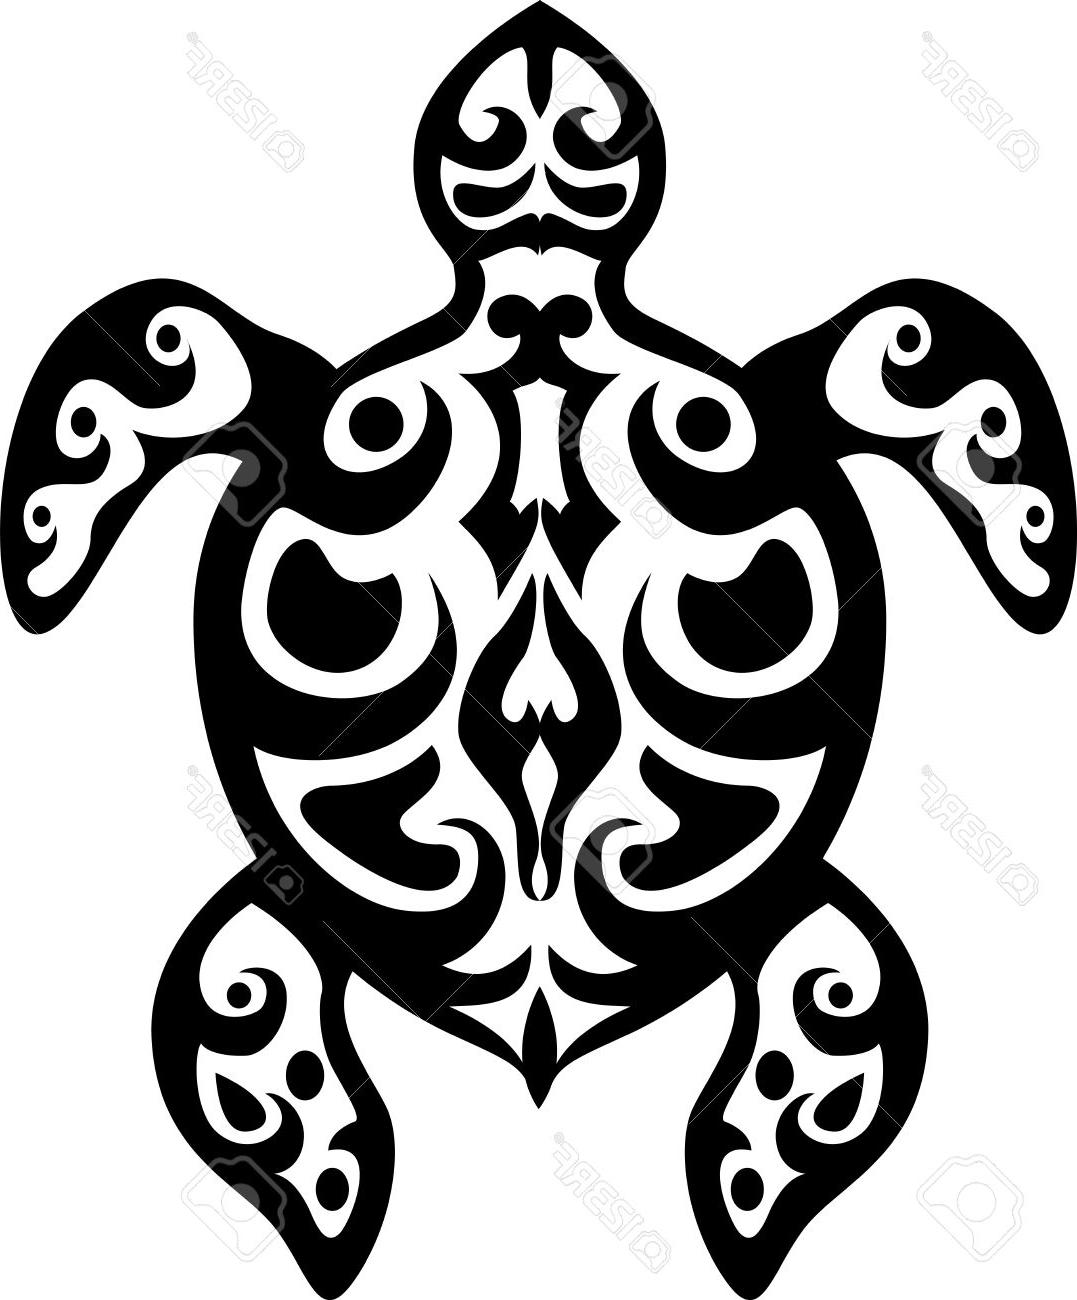 1077x1300 Top Tribal Sea Turtle Silhouette Cdr Free Vector Art, Images